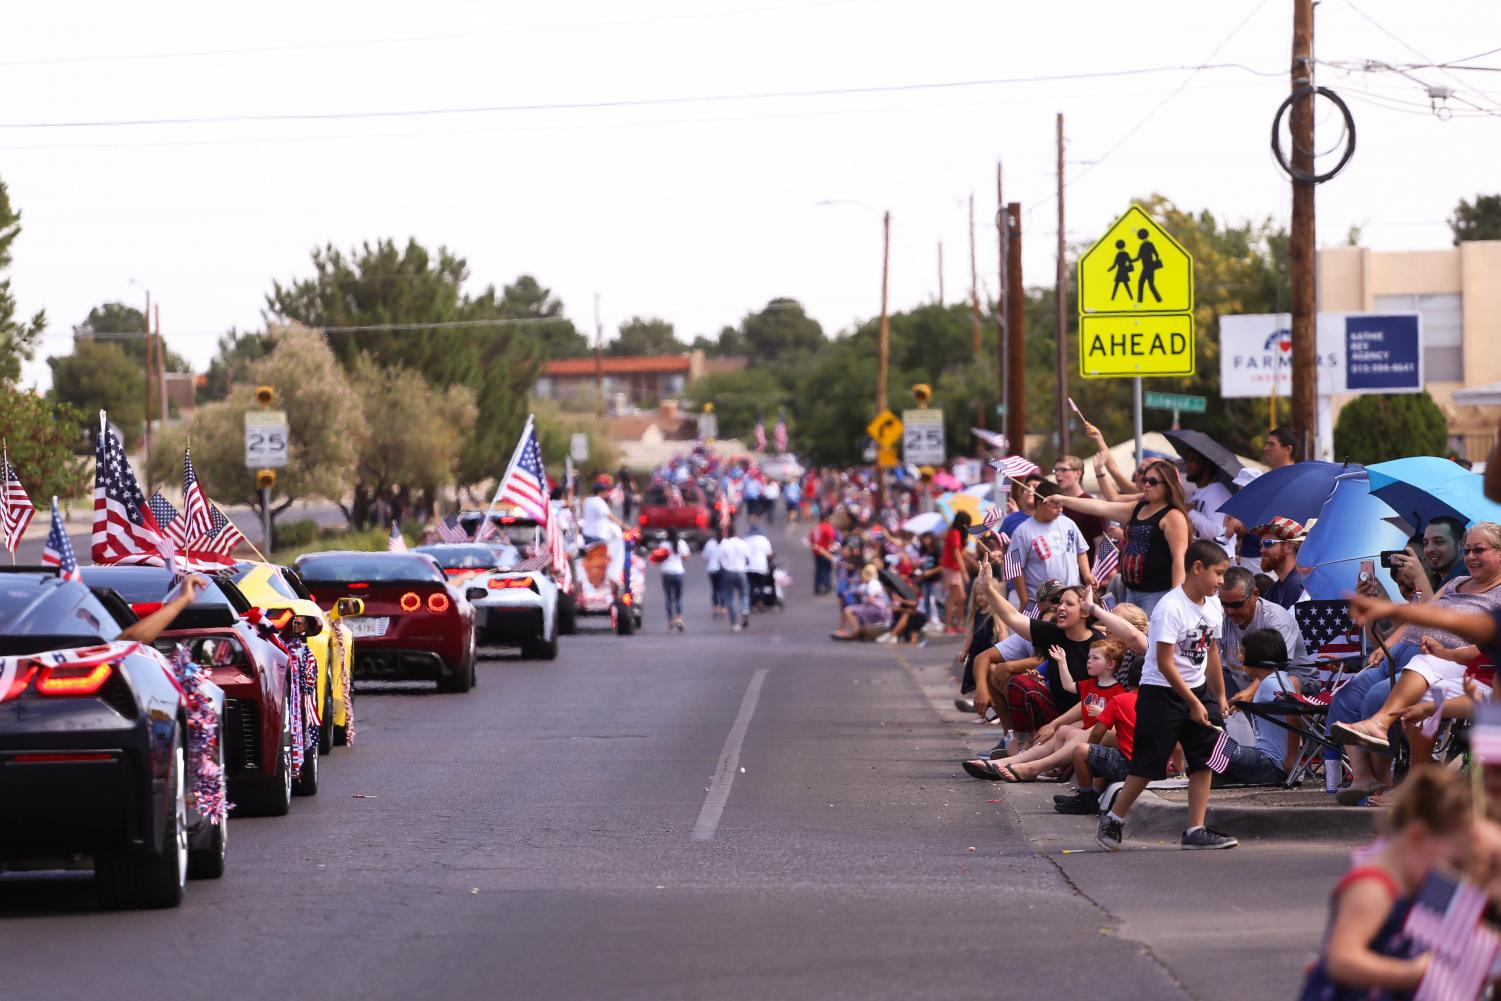 The community lines up along the sidewalk in Eastside El Paso for the 38th annual People's Parade on Wednesday, July 4th.